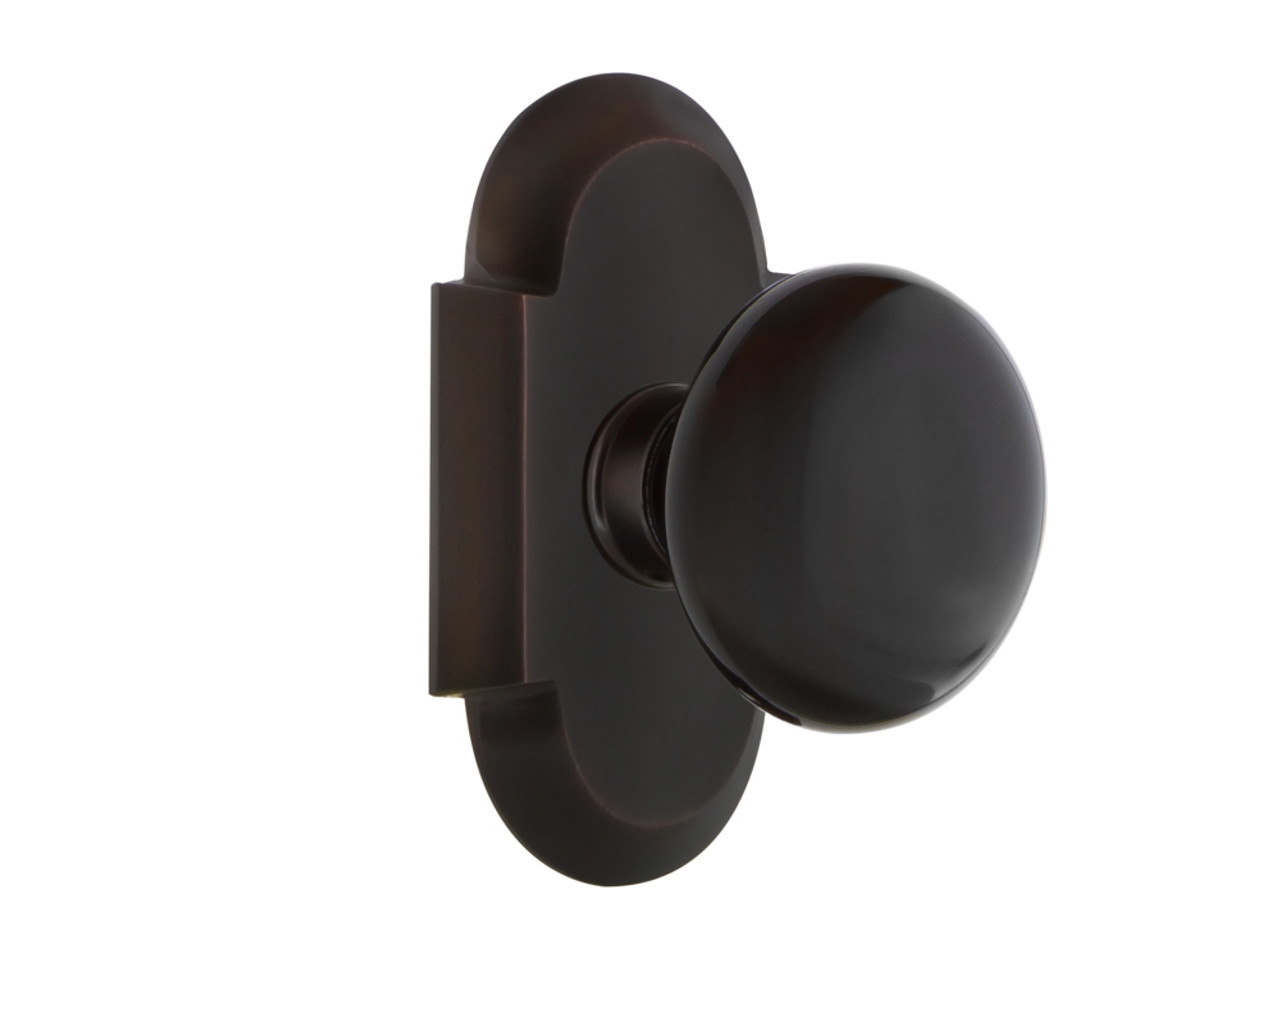 Nostalgic Warehouse Cottage Plate Double Dummy Black Porcelain Door Knob in Timeless Bronze (NW-700770)